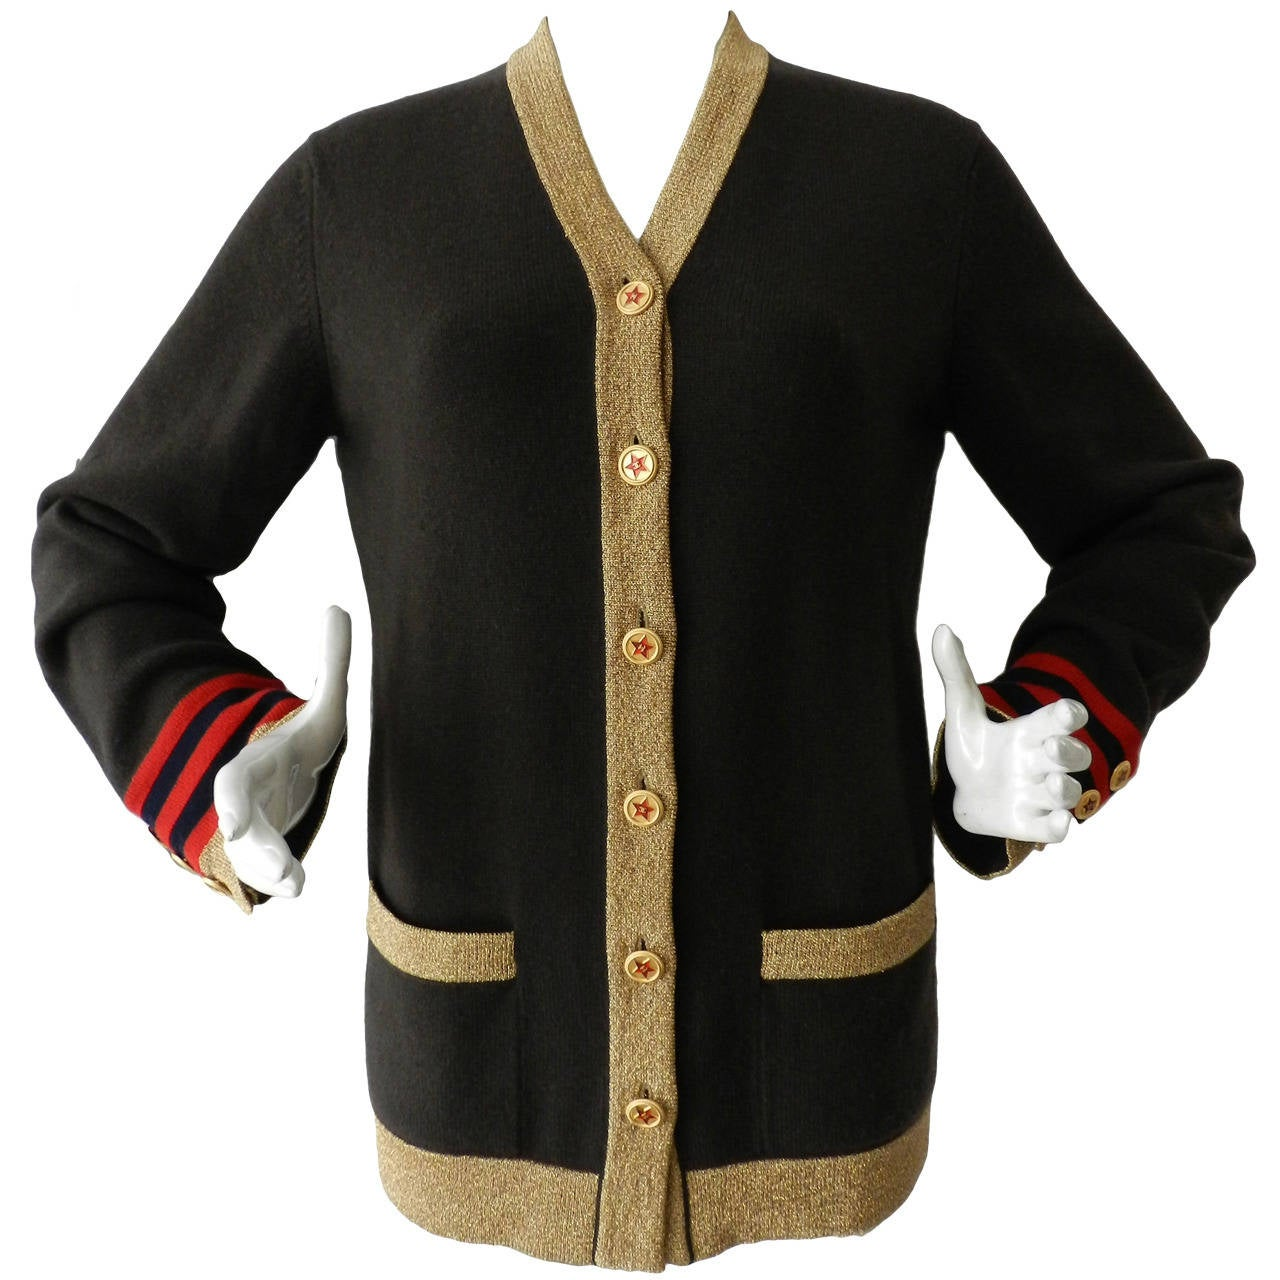 Chanel 09A Russian Collection Cashmere Cardigan Sweater at 1stdibs